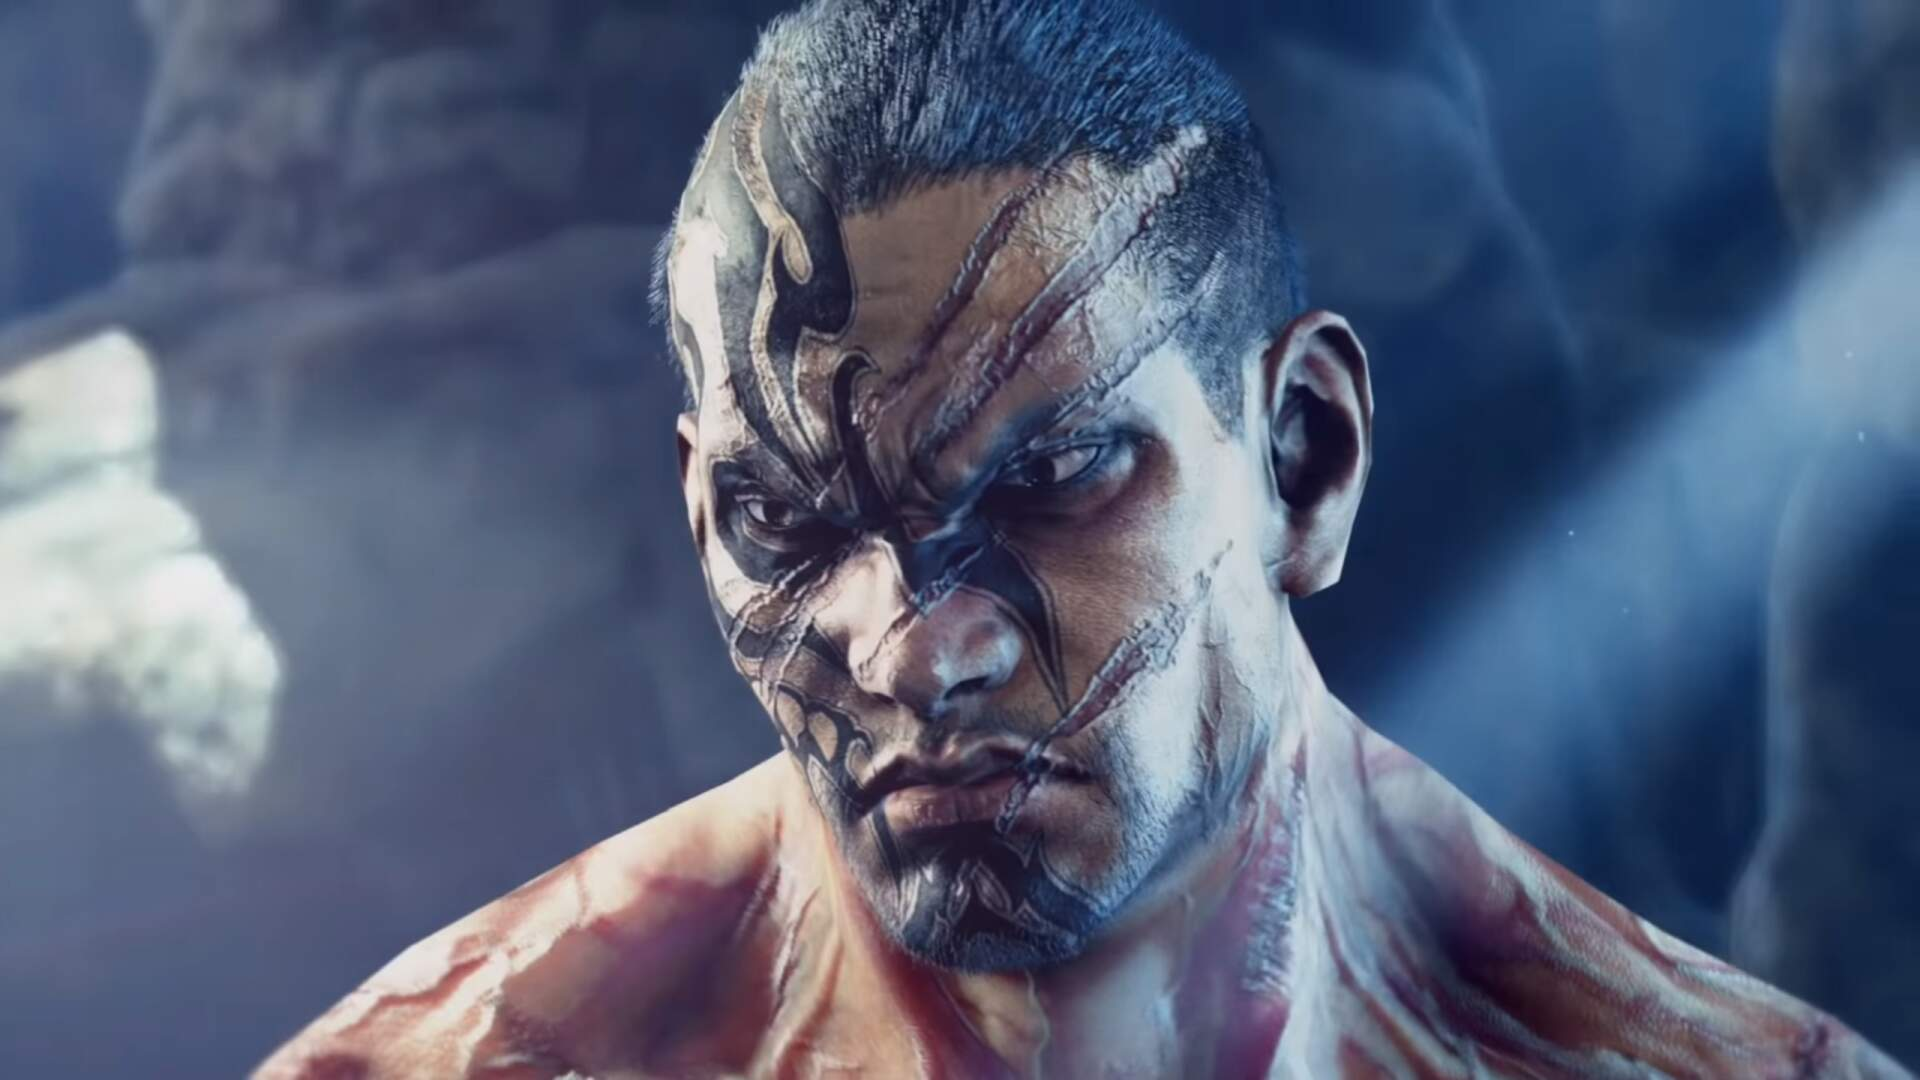 Tekken 7 Brought In Two Popular Muay Thai Champions To Mo Cap Its